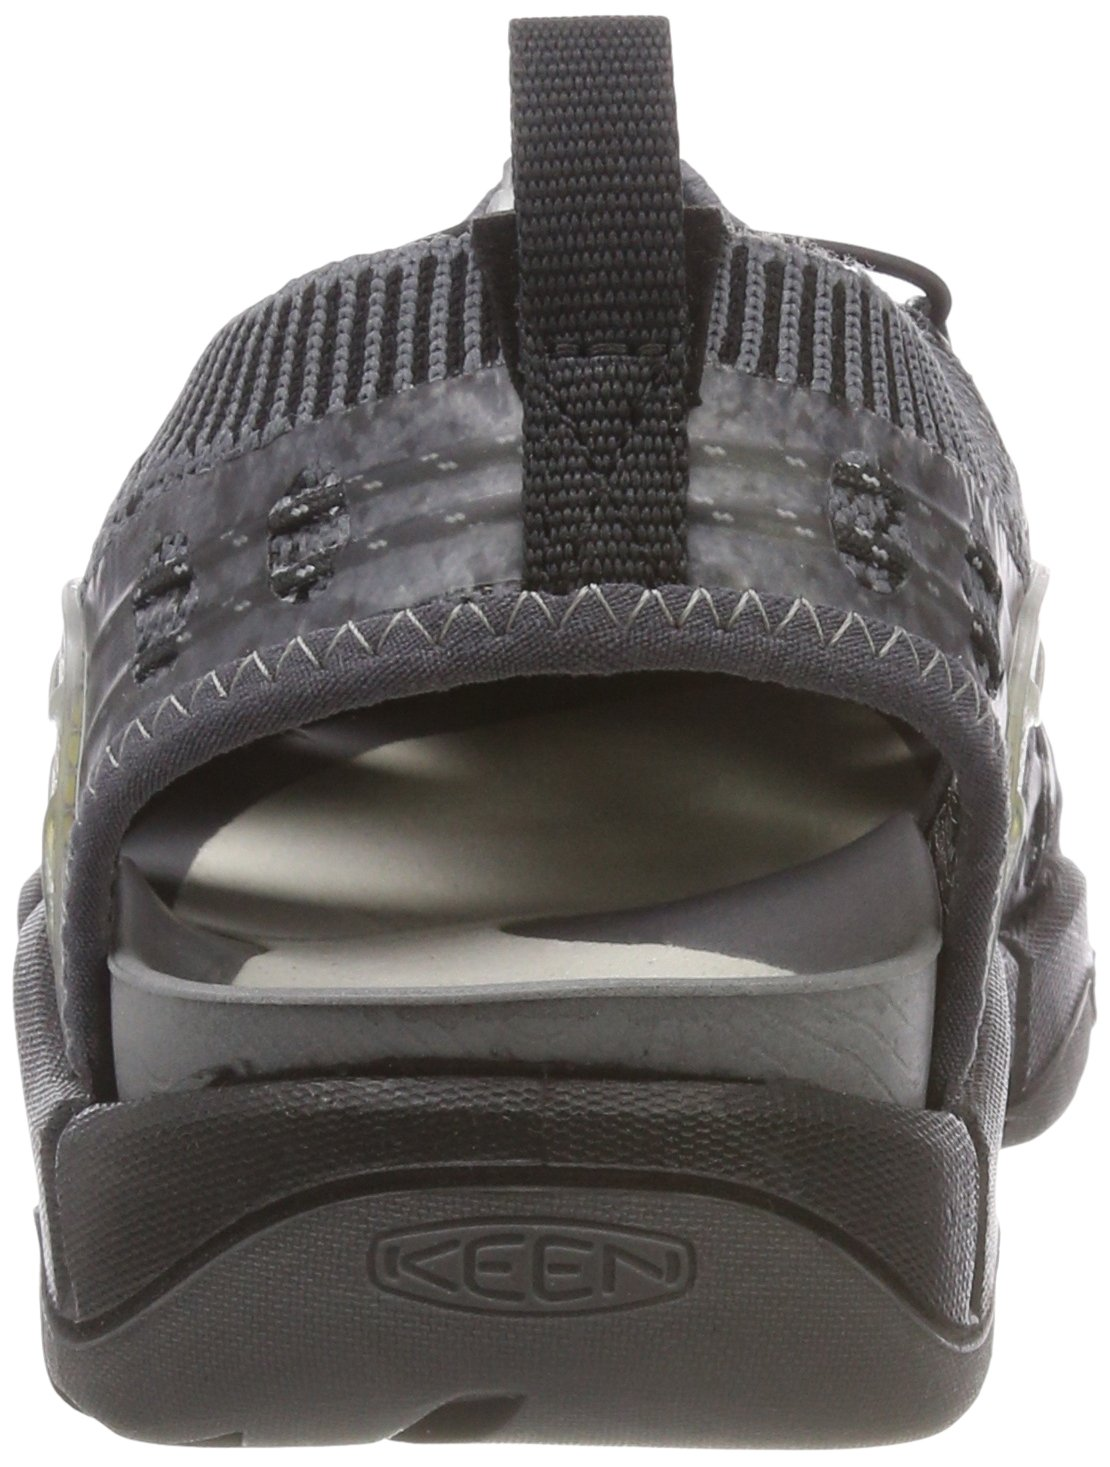 KEEN Women's EVOFIT Outdoor ONE Water Sandal for Outdoor EVOFIT Adventures B06ZYK6KM3 6.5 M US|Heathered Black/Magnet 99f78f